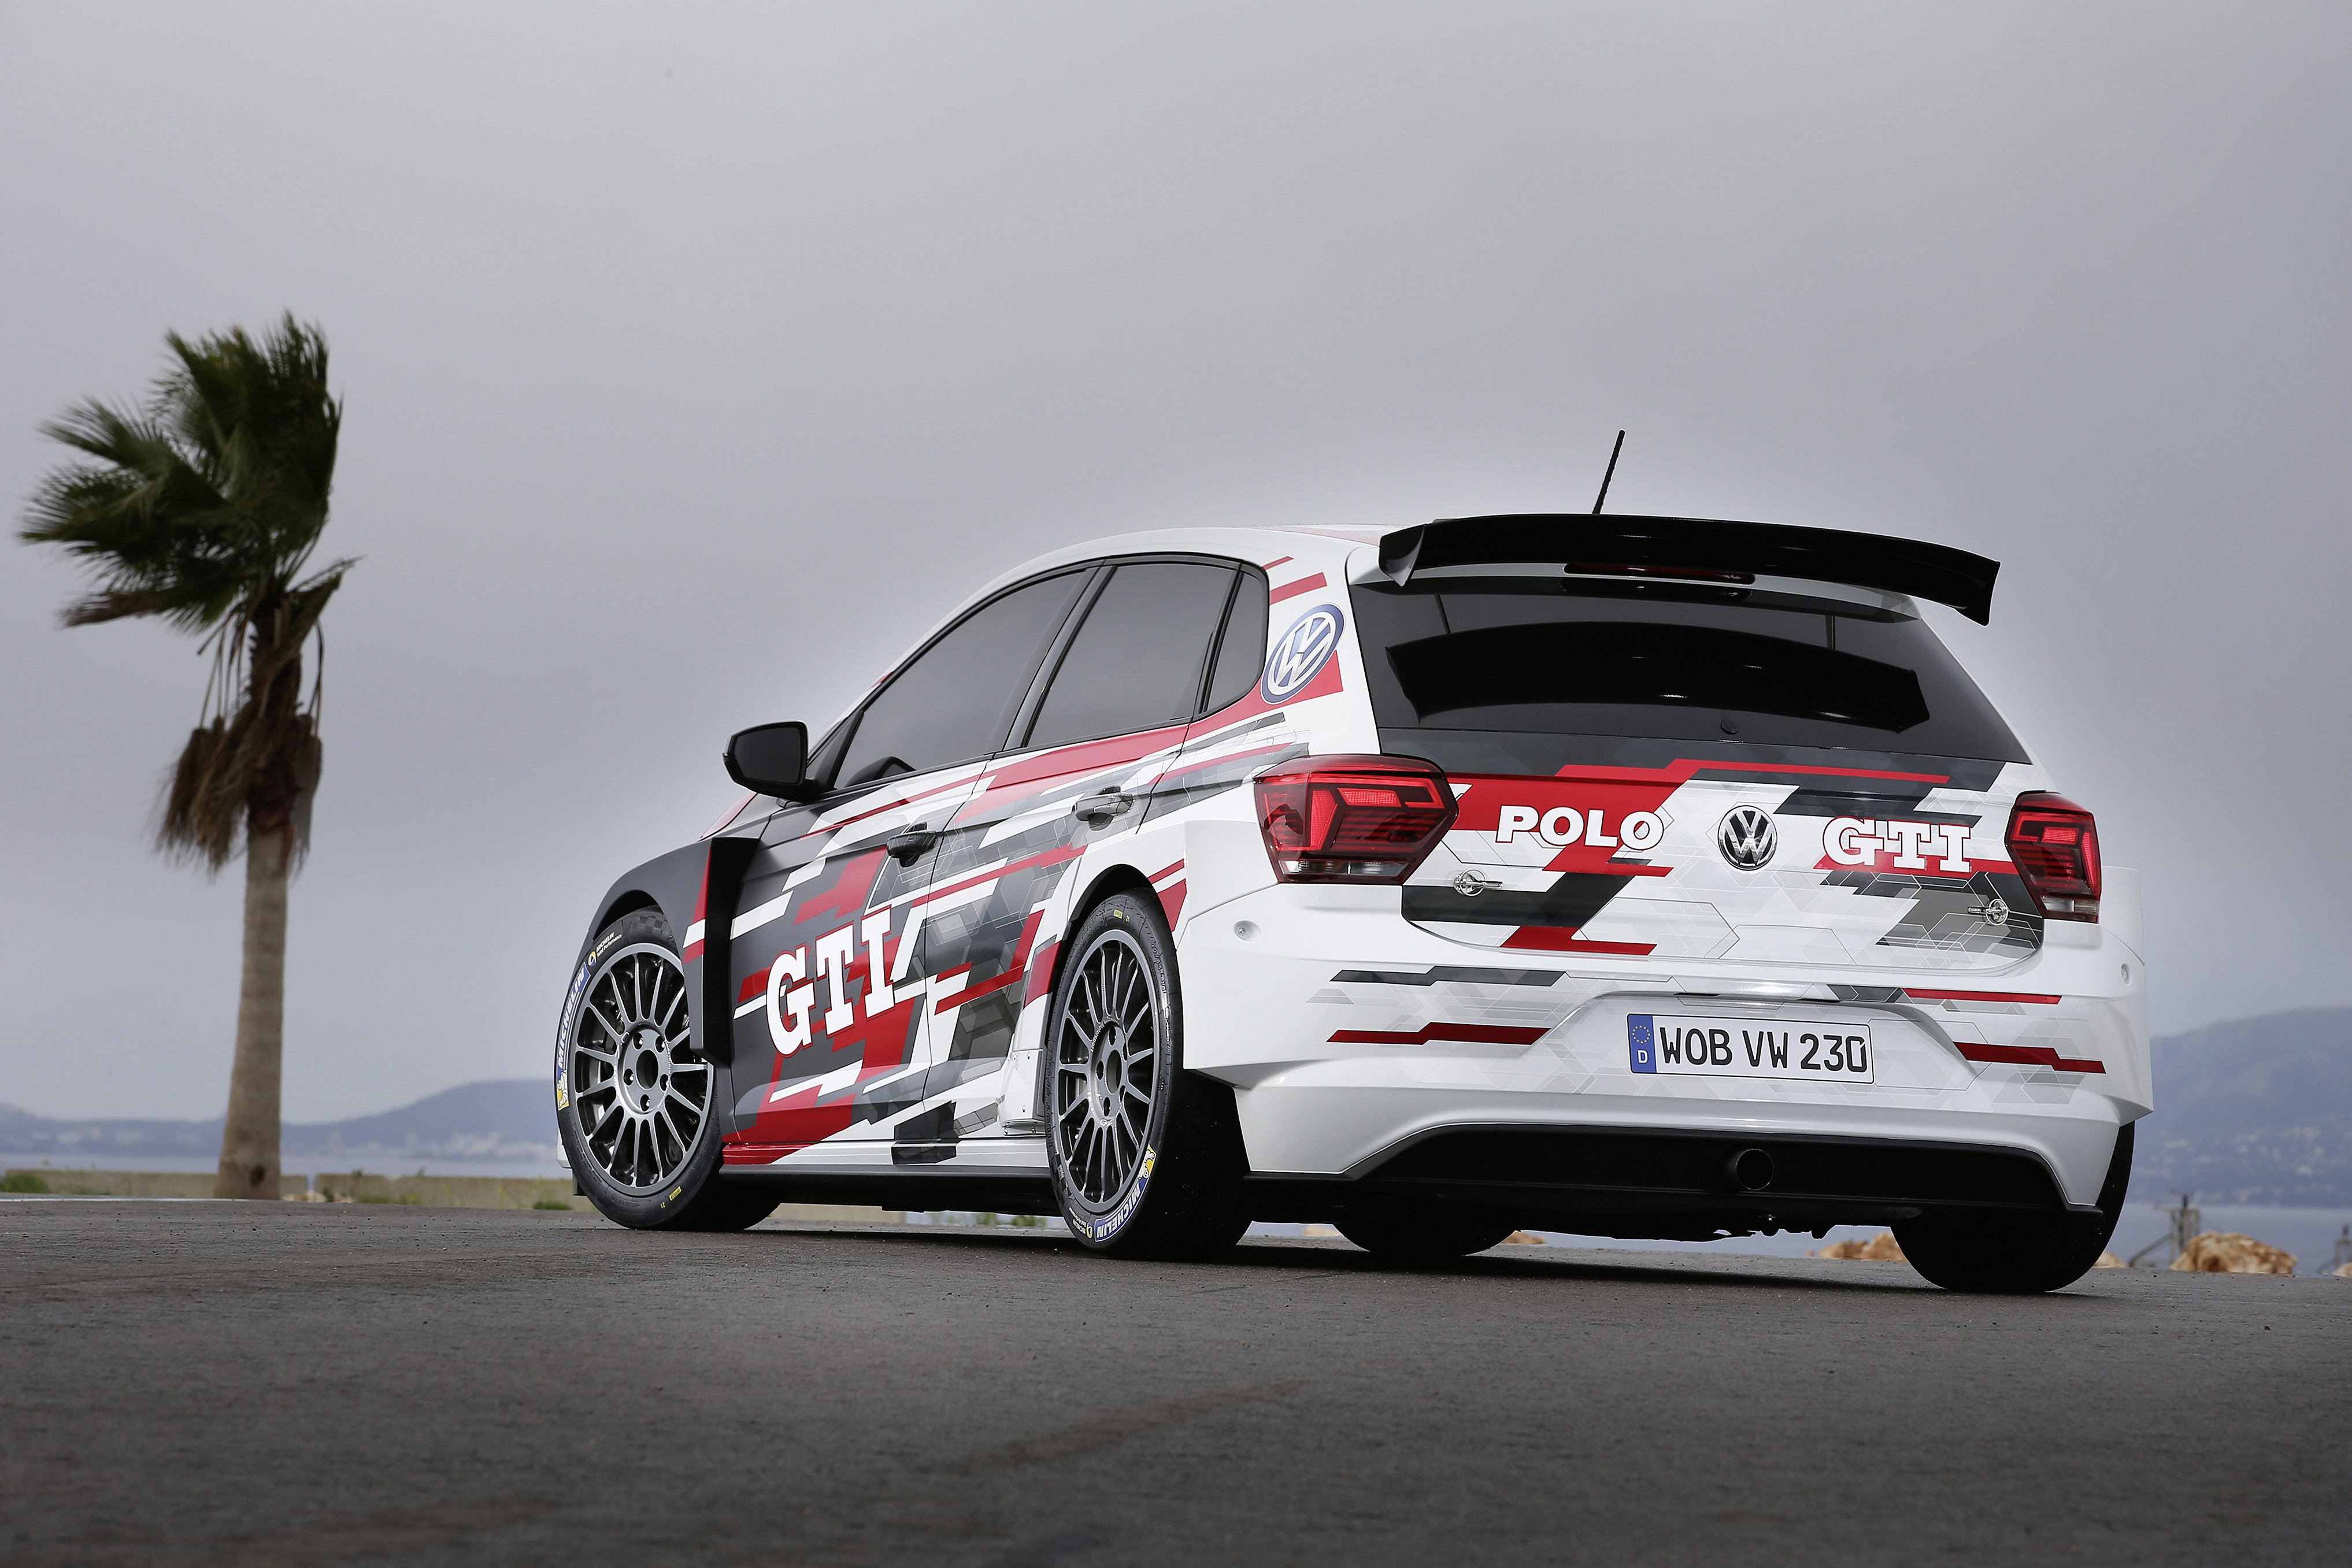 volkswagen polo gti r5 customer race car unveiled. Black Bedroom Furniture Sets. Home Design Ideas